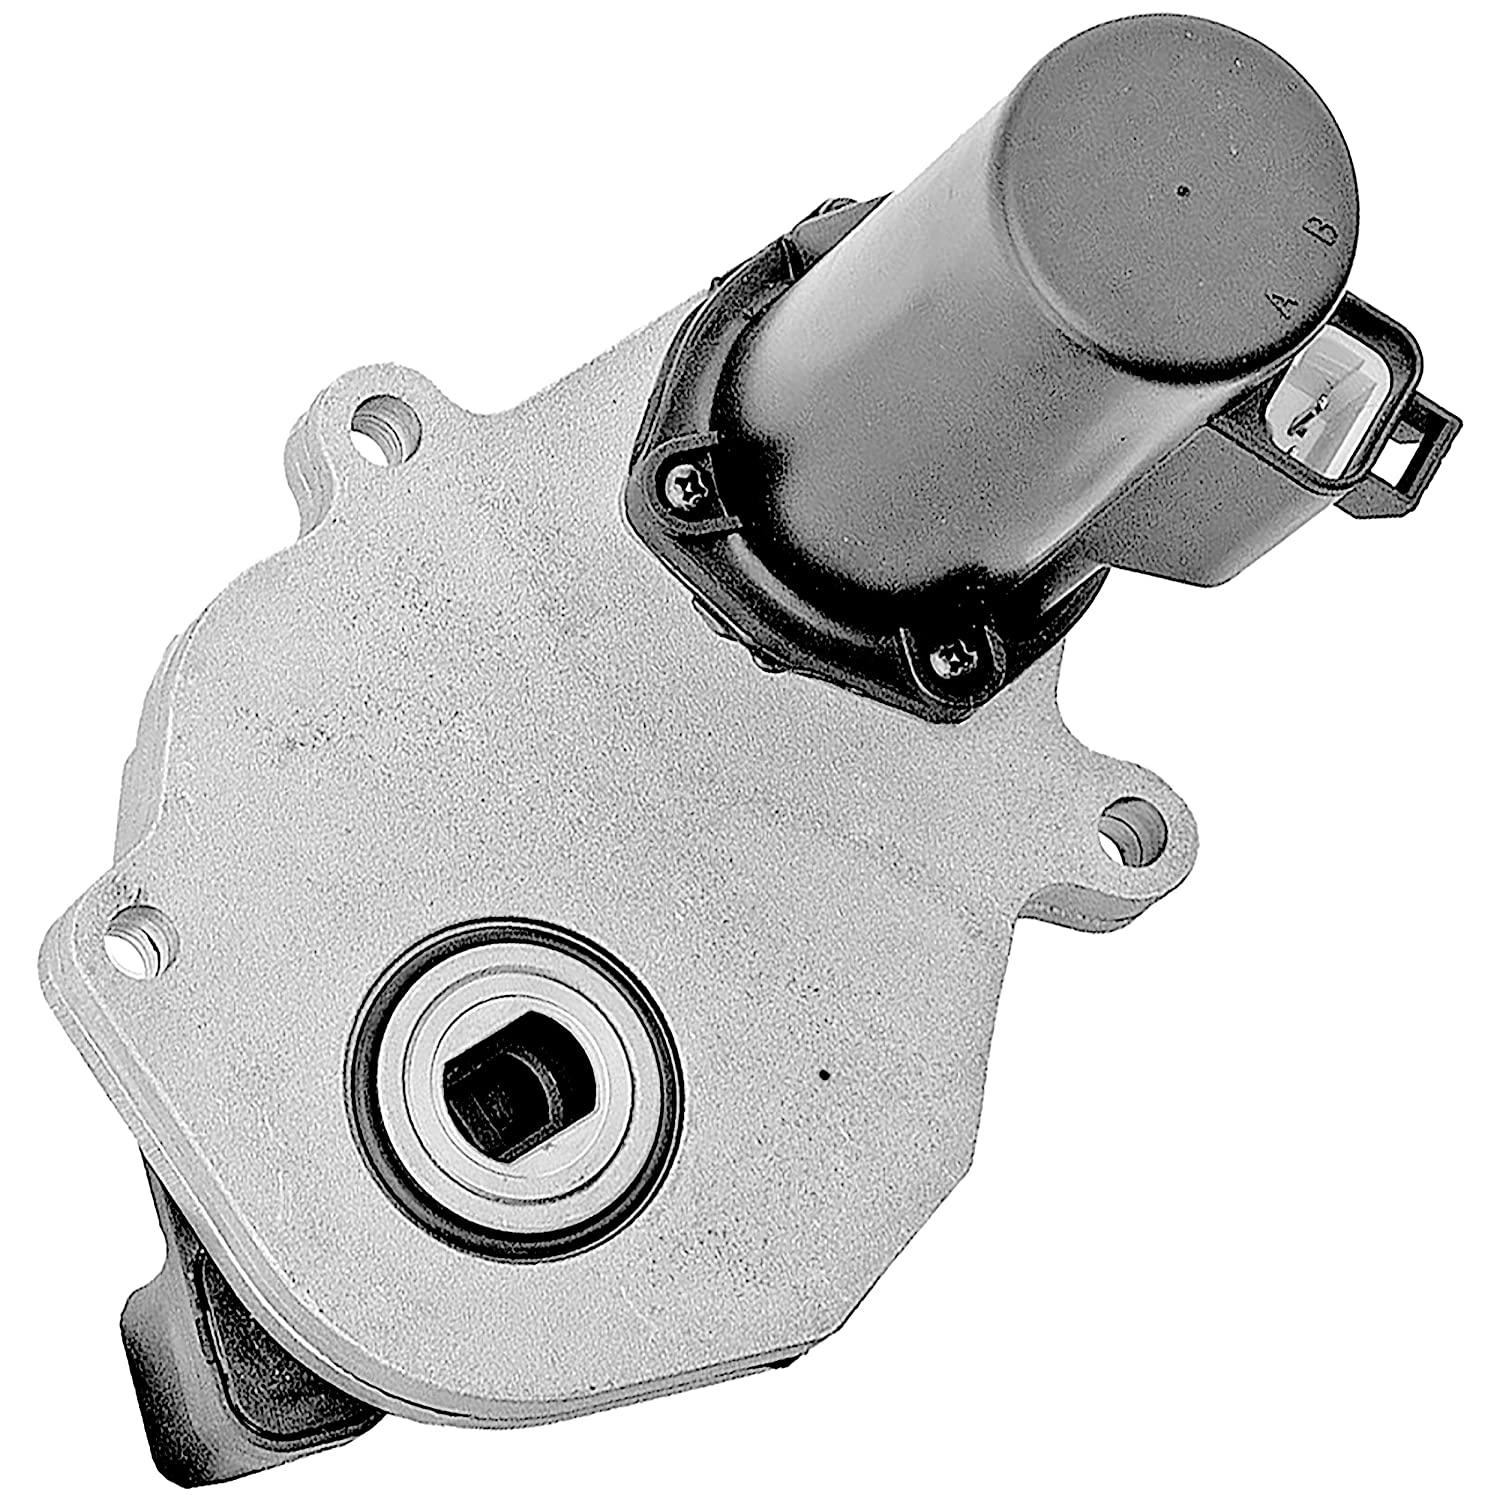 APDTY 711013 4WD 4 Wheel Drive Transfer Case Shift Encoder Motor (Replaces RL019471AB, 12386247, 5019471, 5019471AB, 88996604)